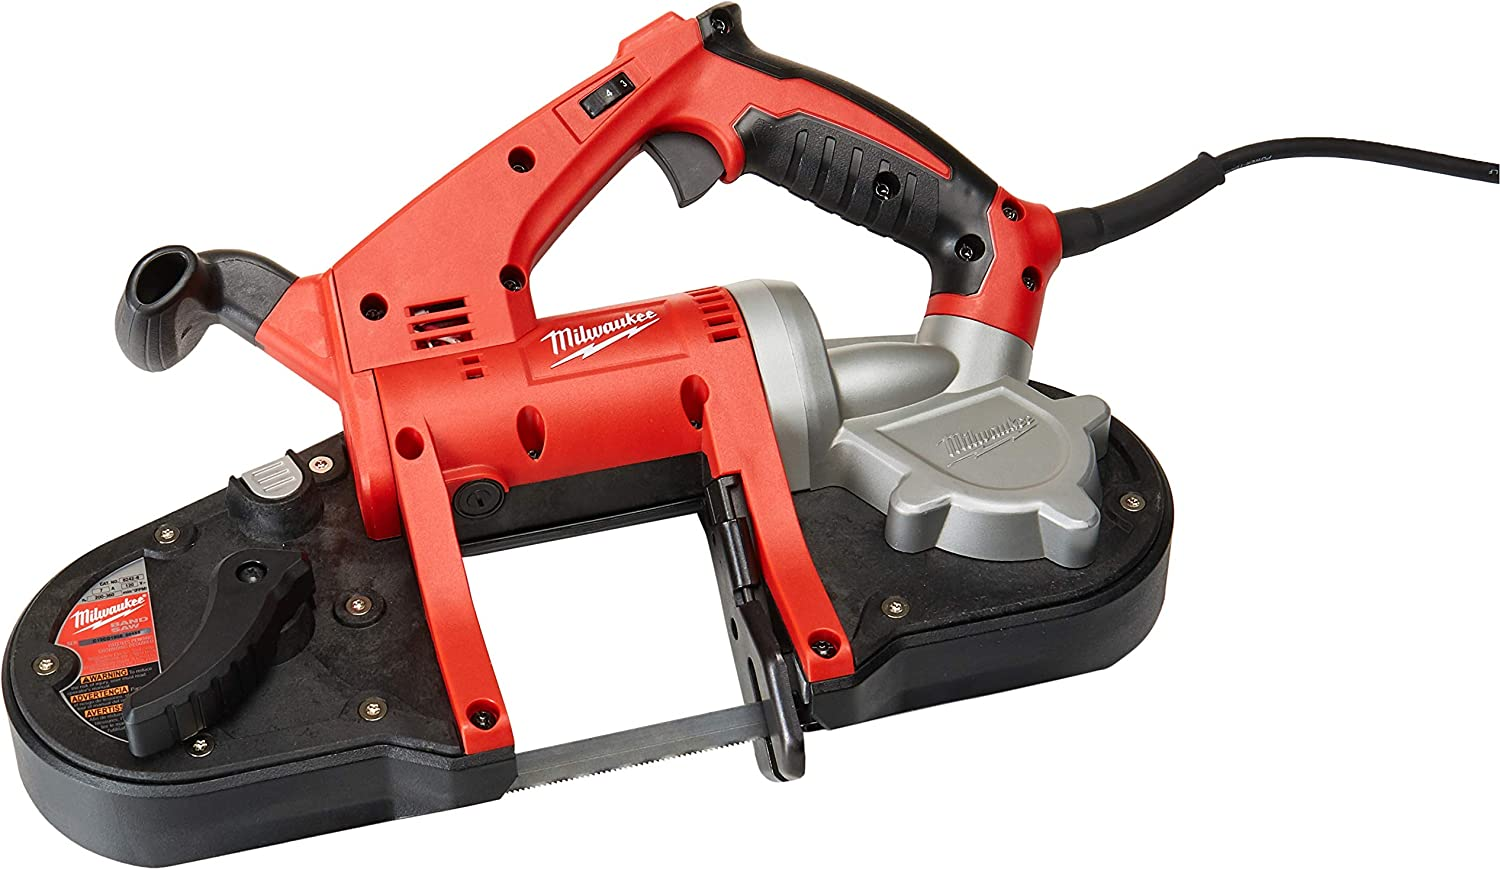 Milwaukee Electric Tool 6242-6 Luxury goods Compact At the price 120 VAC Band Saw Corded